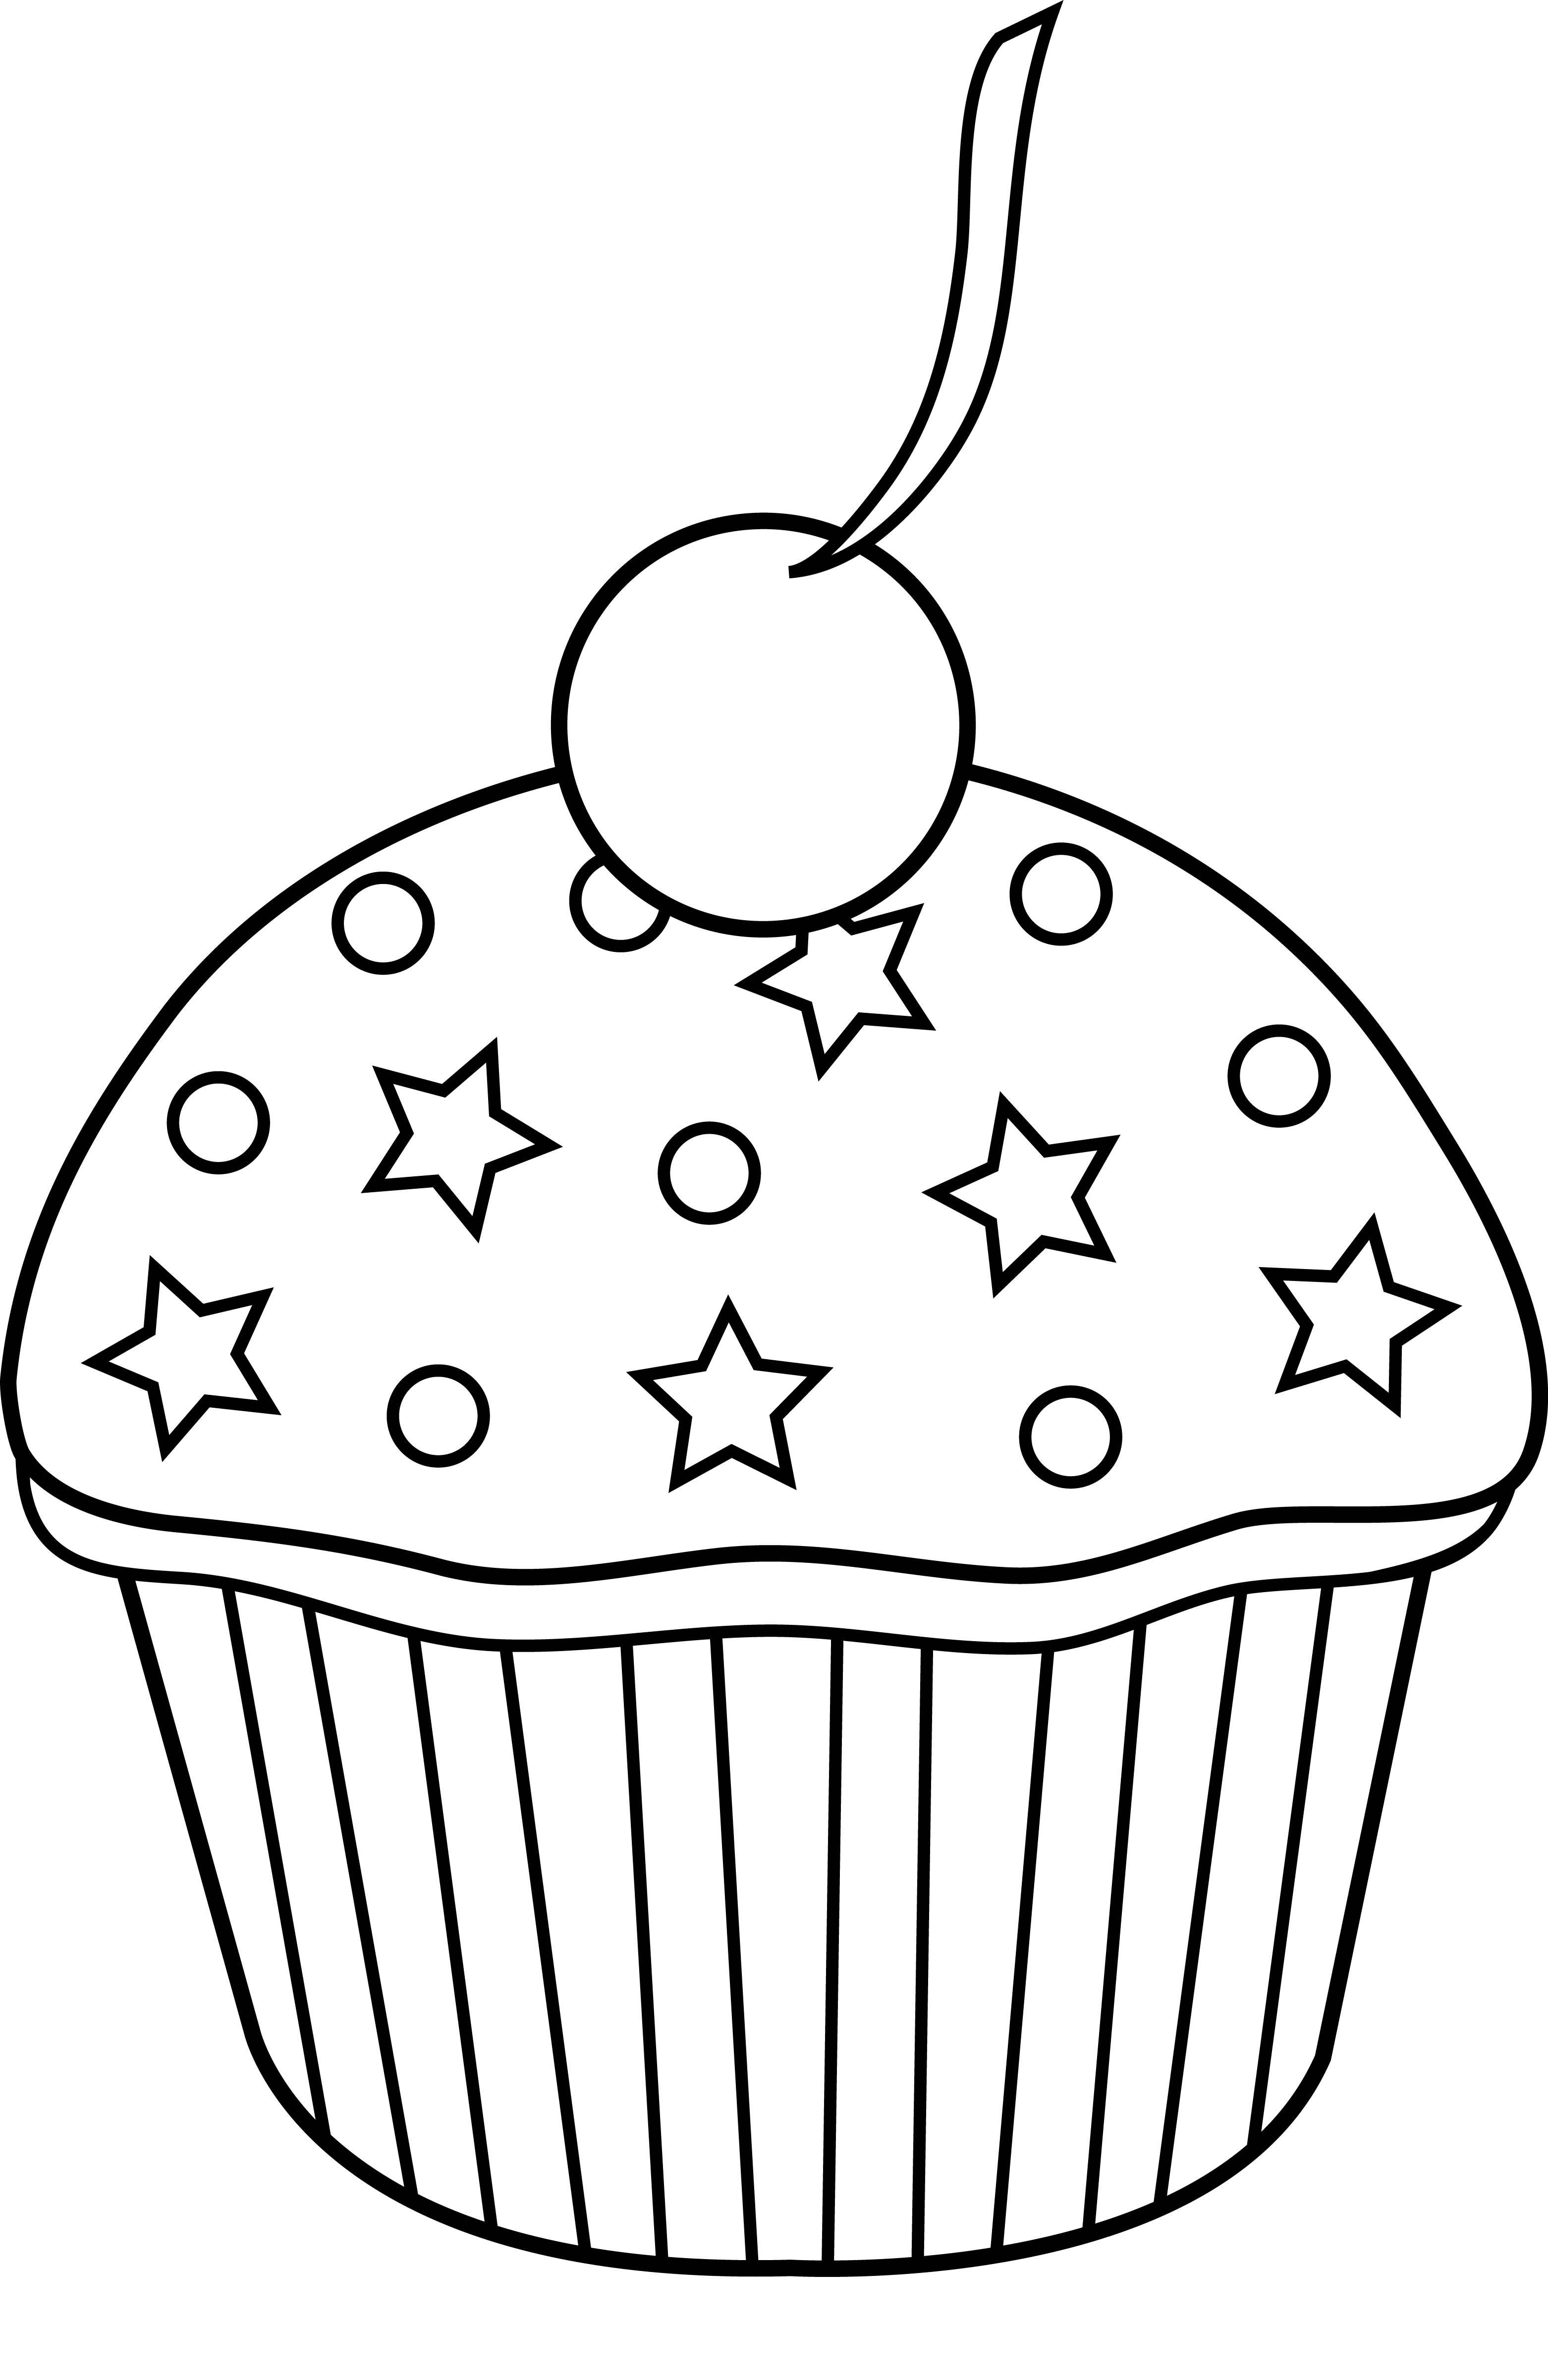 Cupcake Clipart Black And White No Sprinkles Clipground